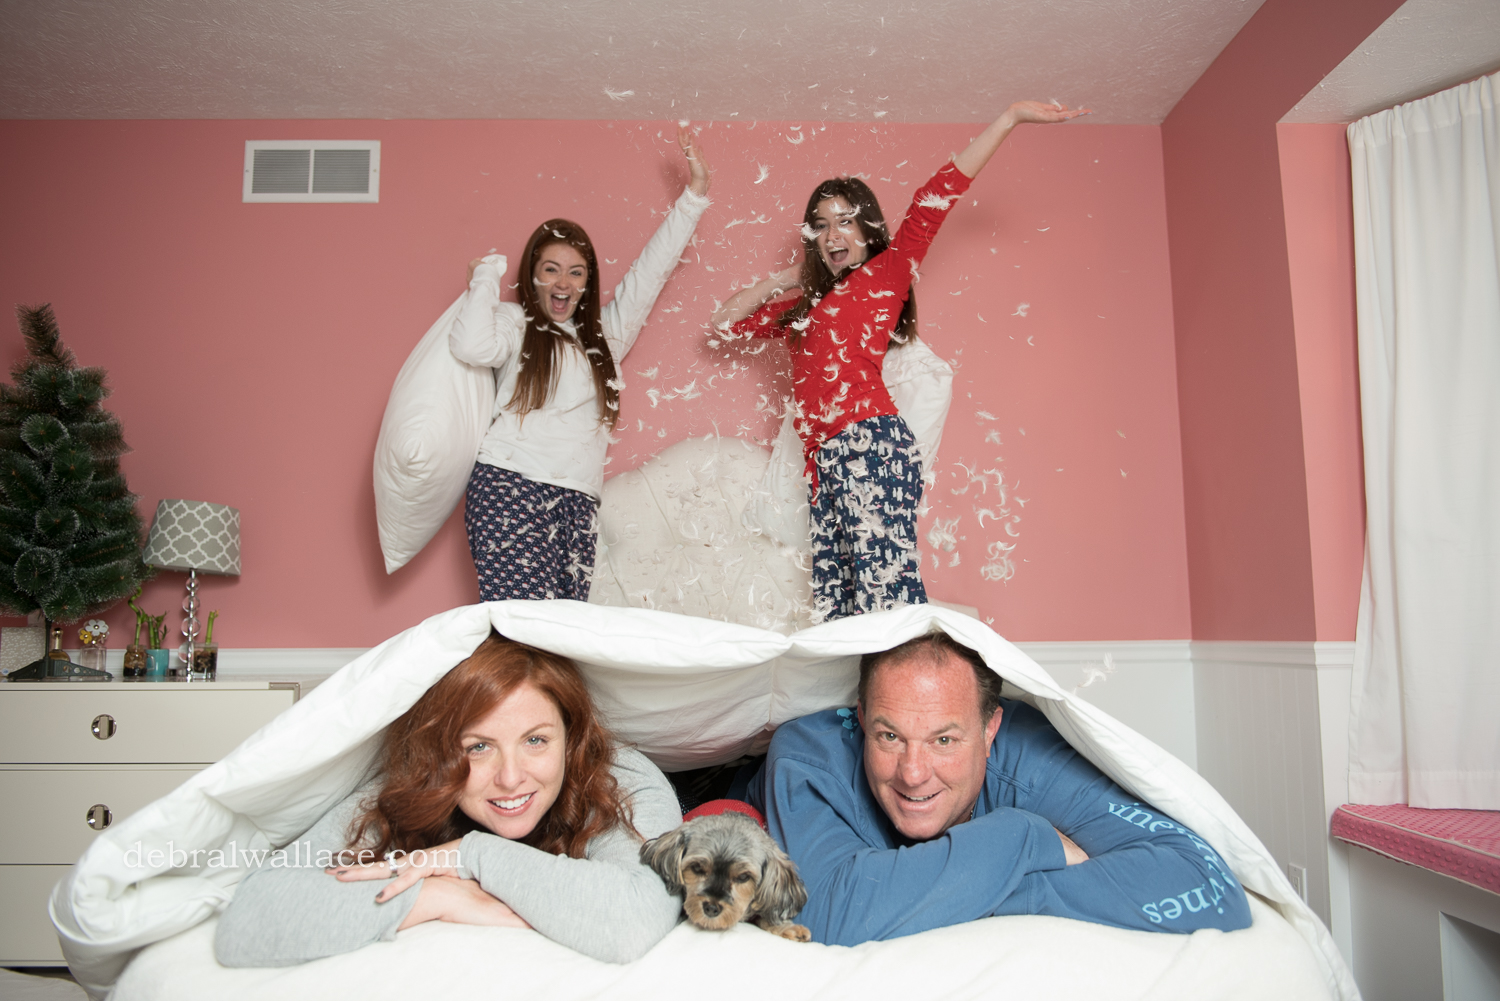 Pillow Fight Themed Family Photography rochester ny